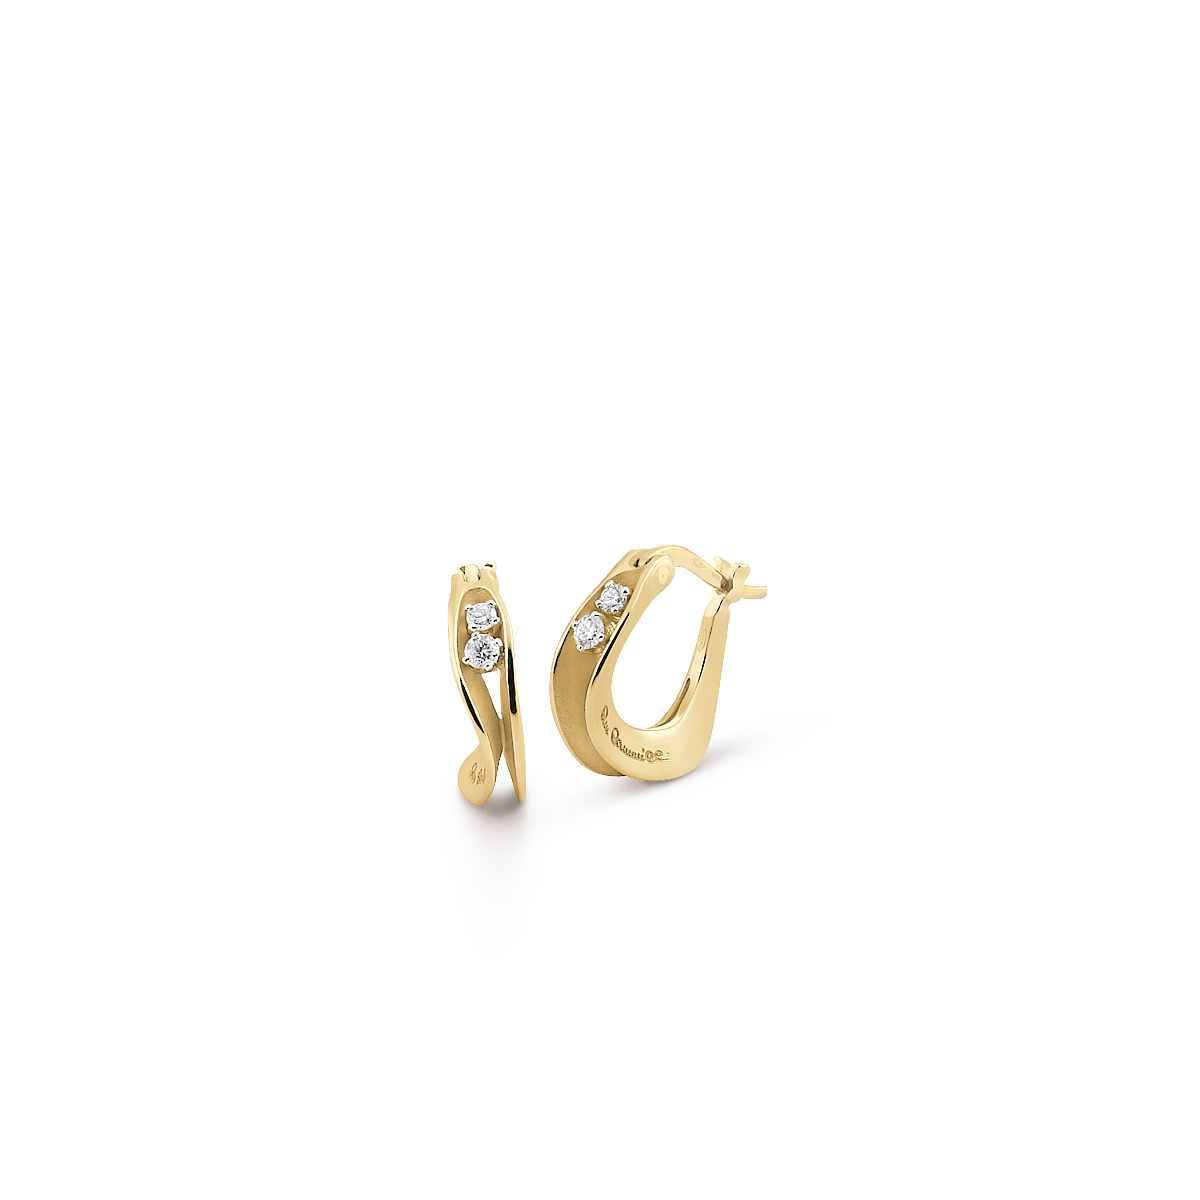 Anna Maria Cammilli 18ct Yellow Gold Diamond Dune Hoop Earrings